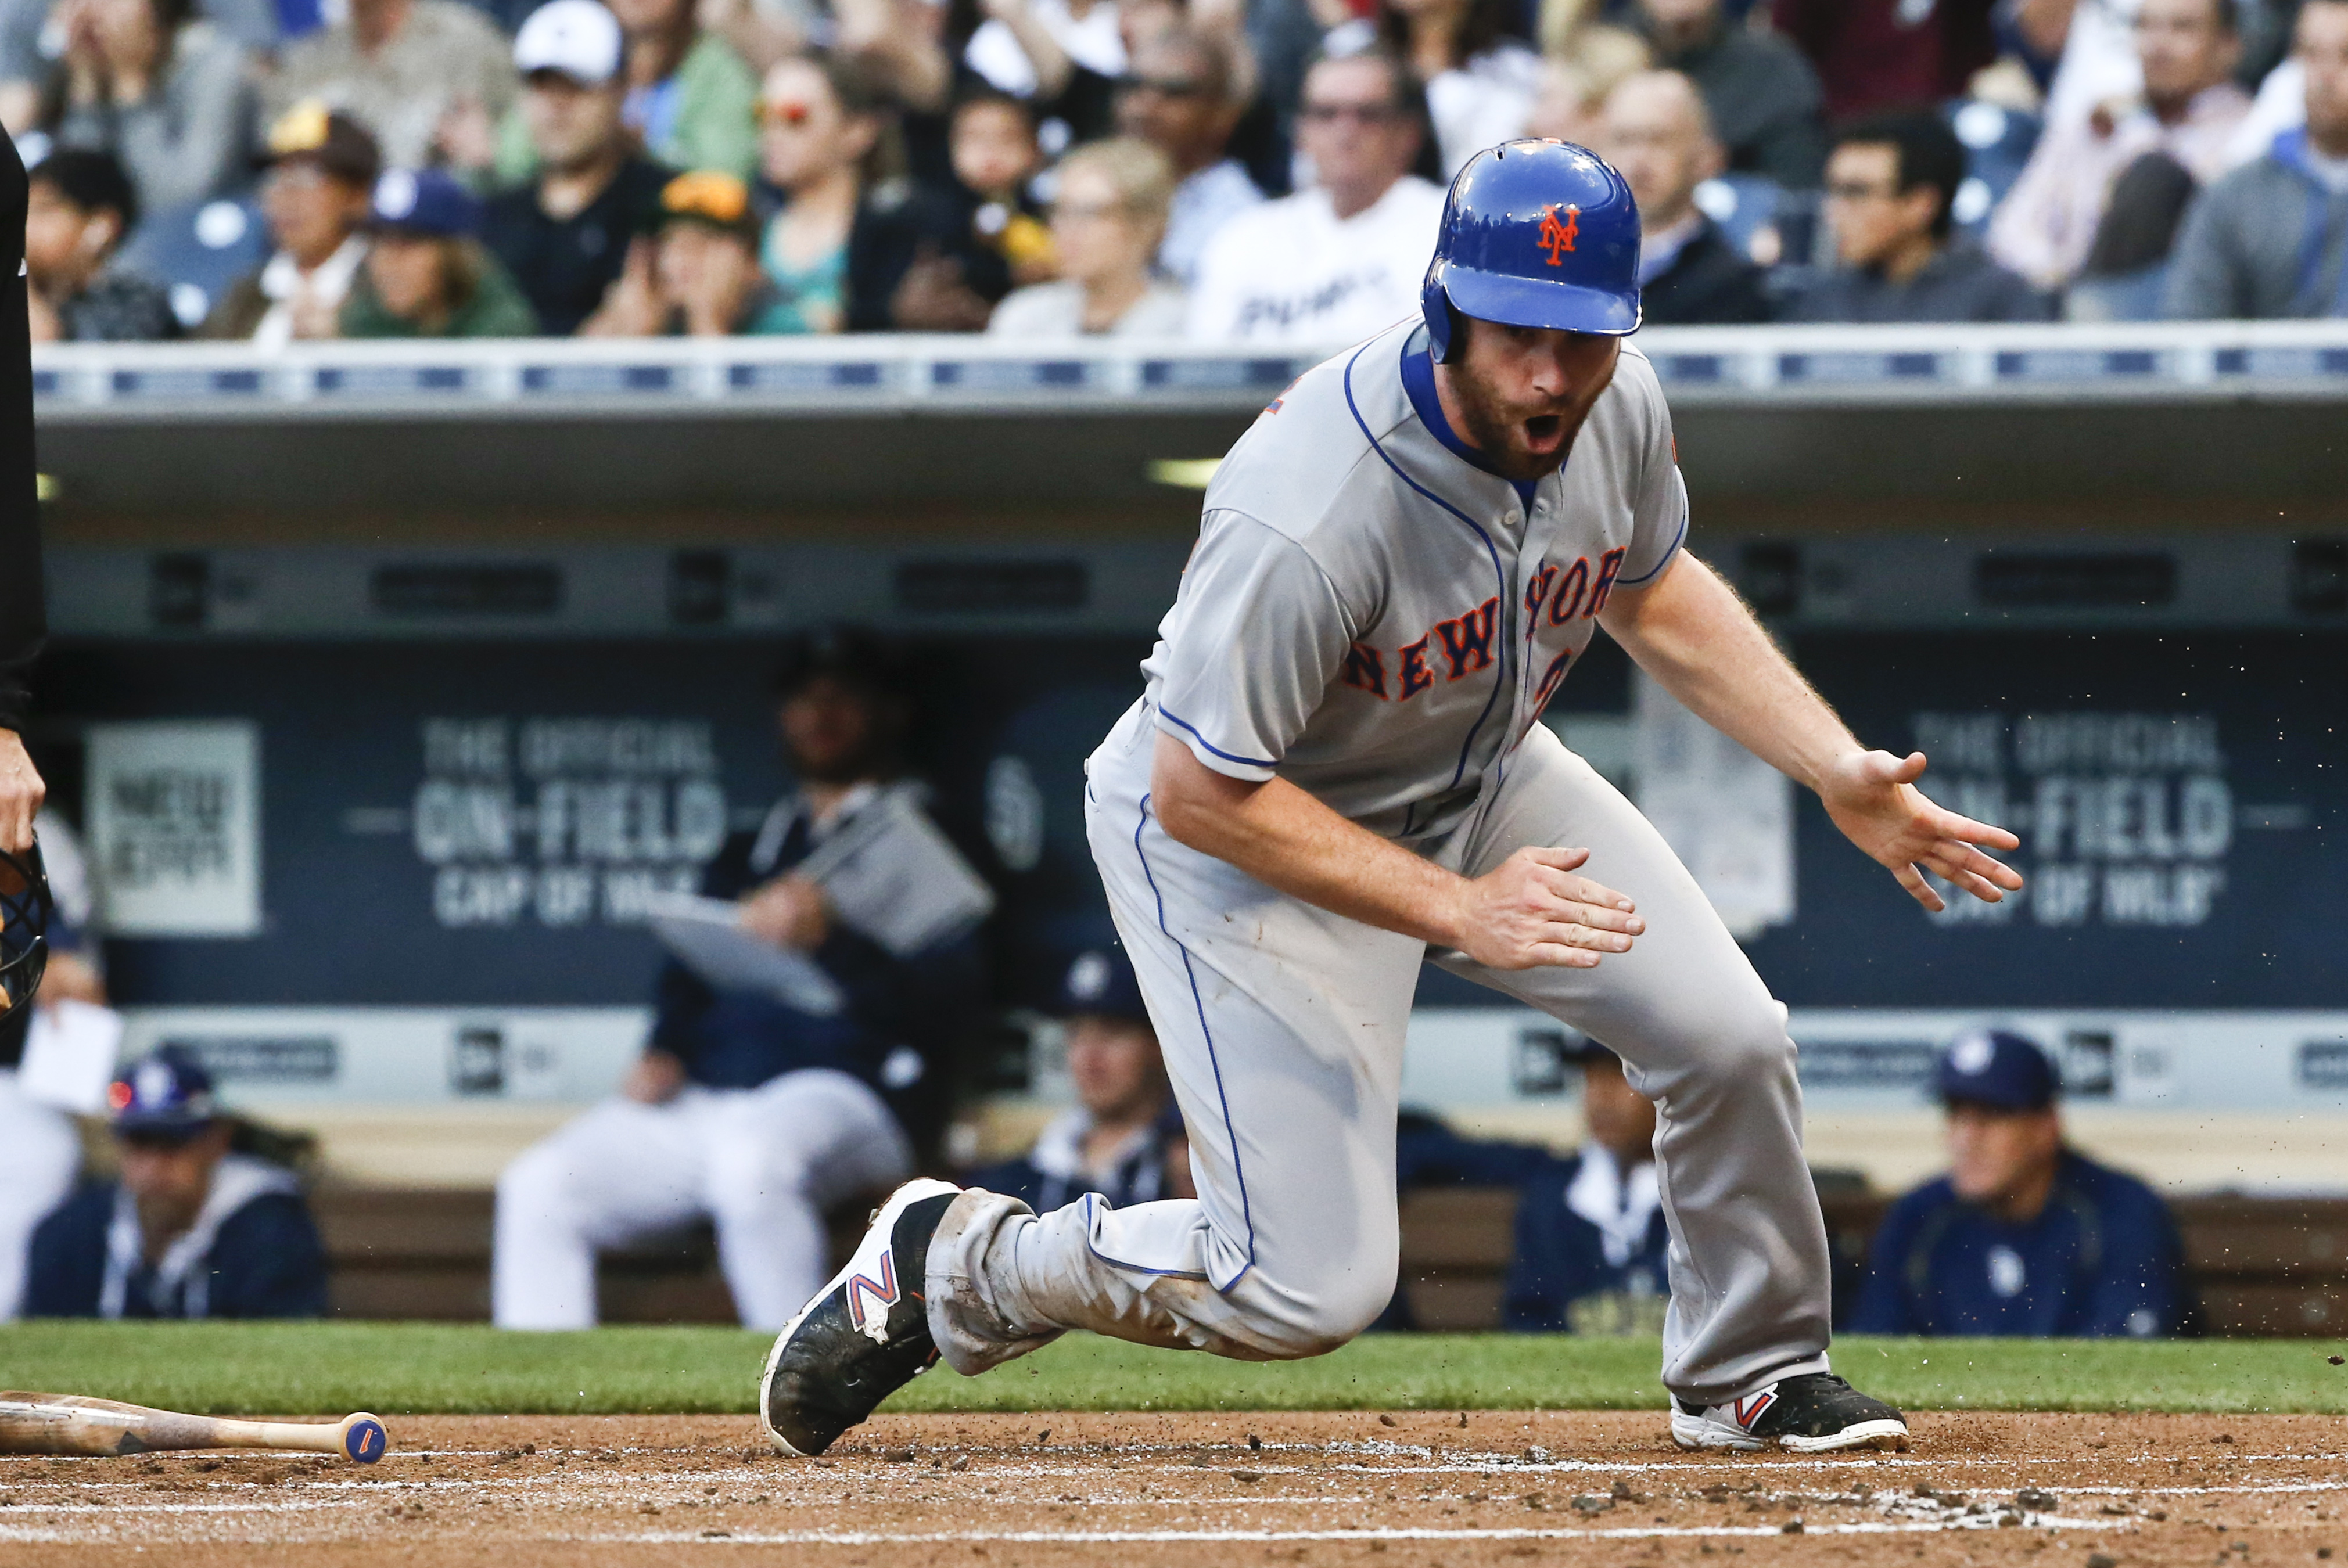 New York Mets' Daniel Murphy slaps his hands after scoring from second after a throwing error by San Diego Padres third baseman Will Middlebrooks in the first inning of a baseball game Monday, June 1, 2015, in San Diego.  (AP Photo/Lenny Ignelzi)